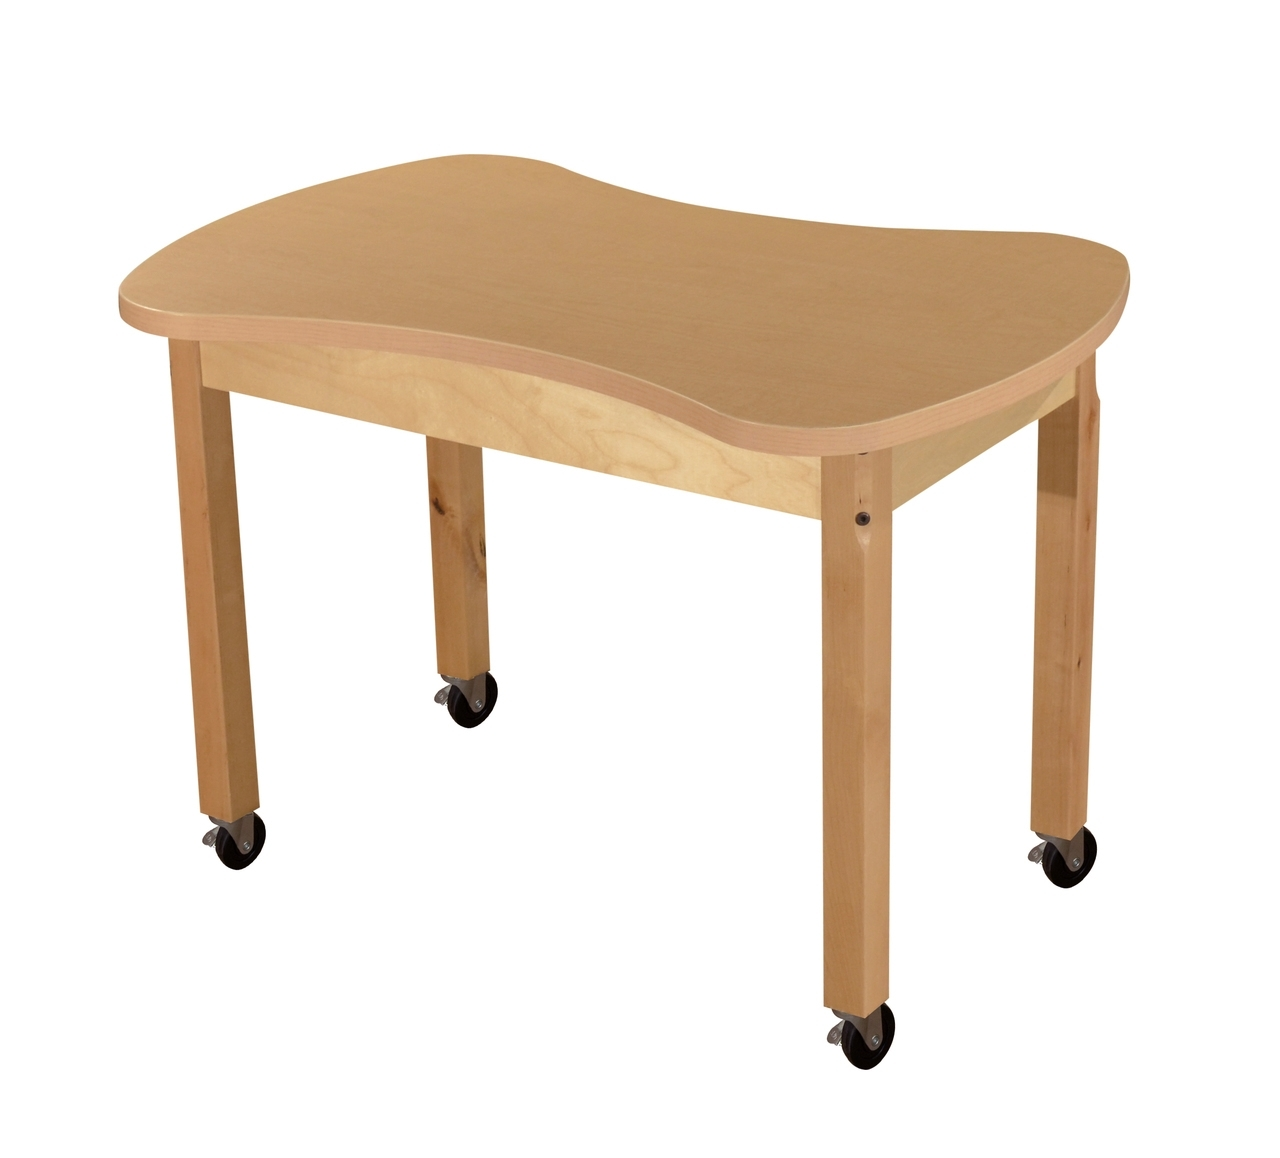 Mobile Synergy Junction 24 Inch X 36 High Pressure Laminate Table With Hardwood Legs- 14 - Hpl2436c14c6 - Collaboration Tables And Desks HPL2436C14C6